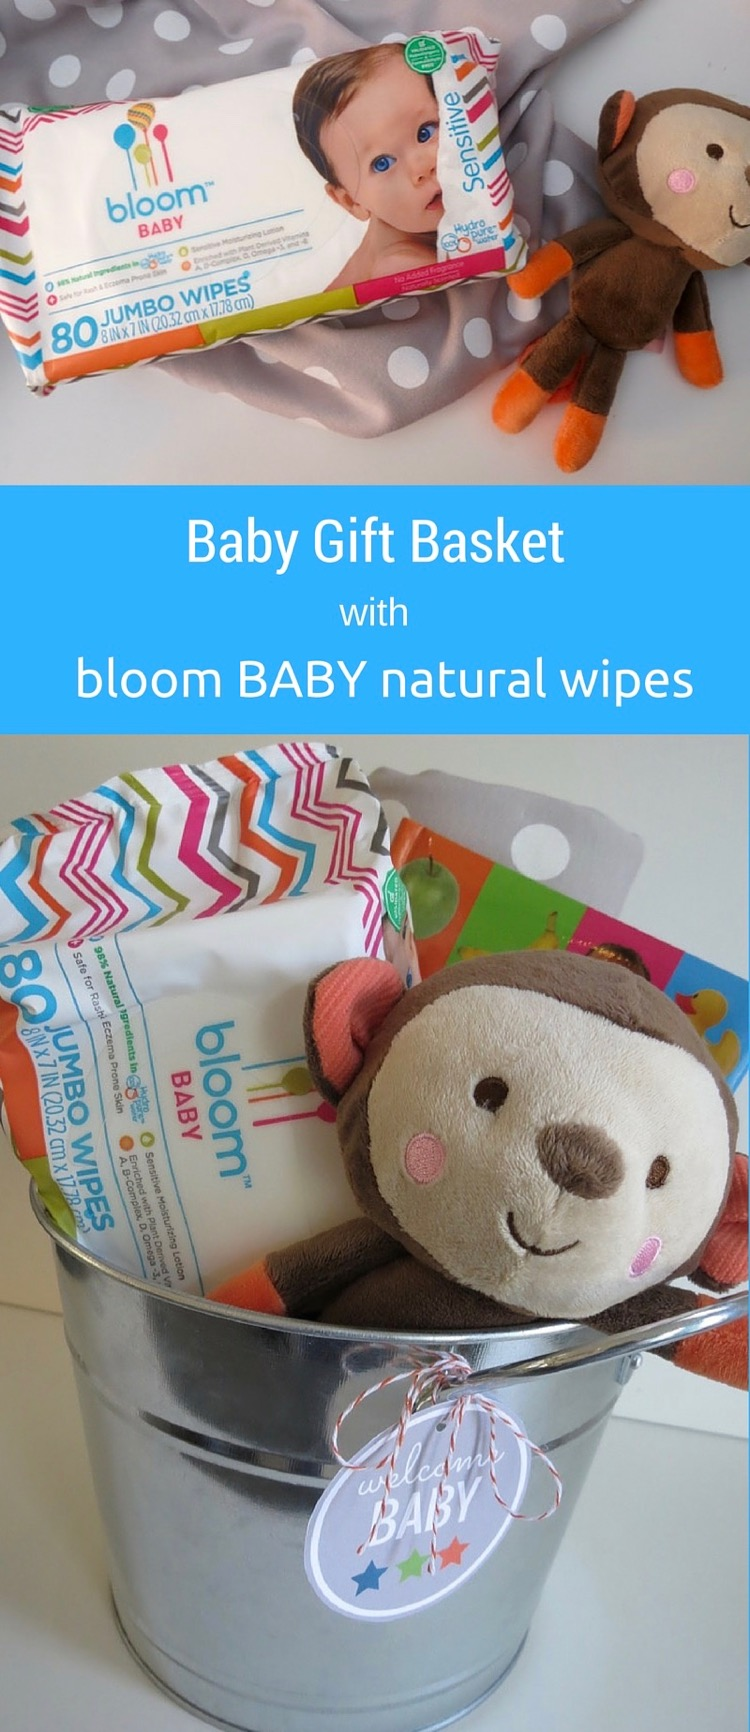 Baby Gift Basket featuring bloom BABY natural wipes at Target